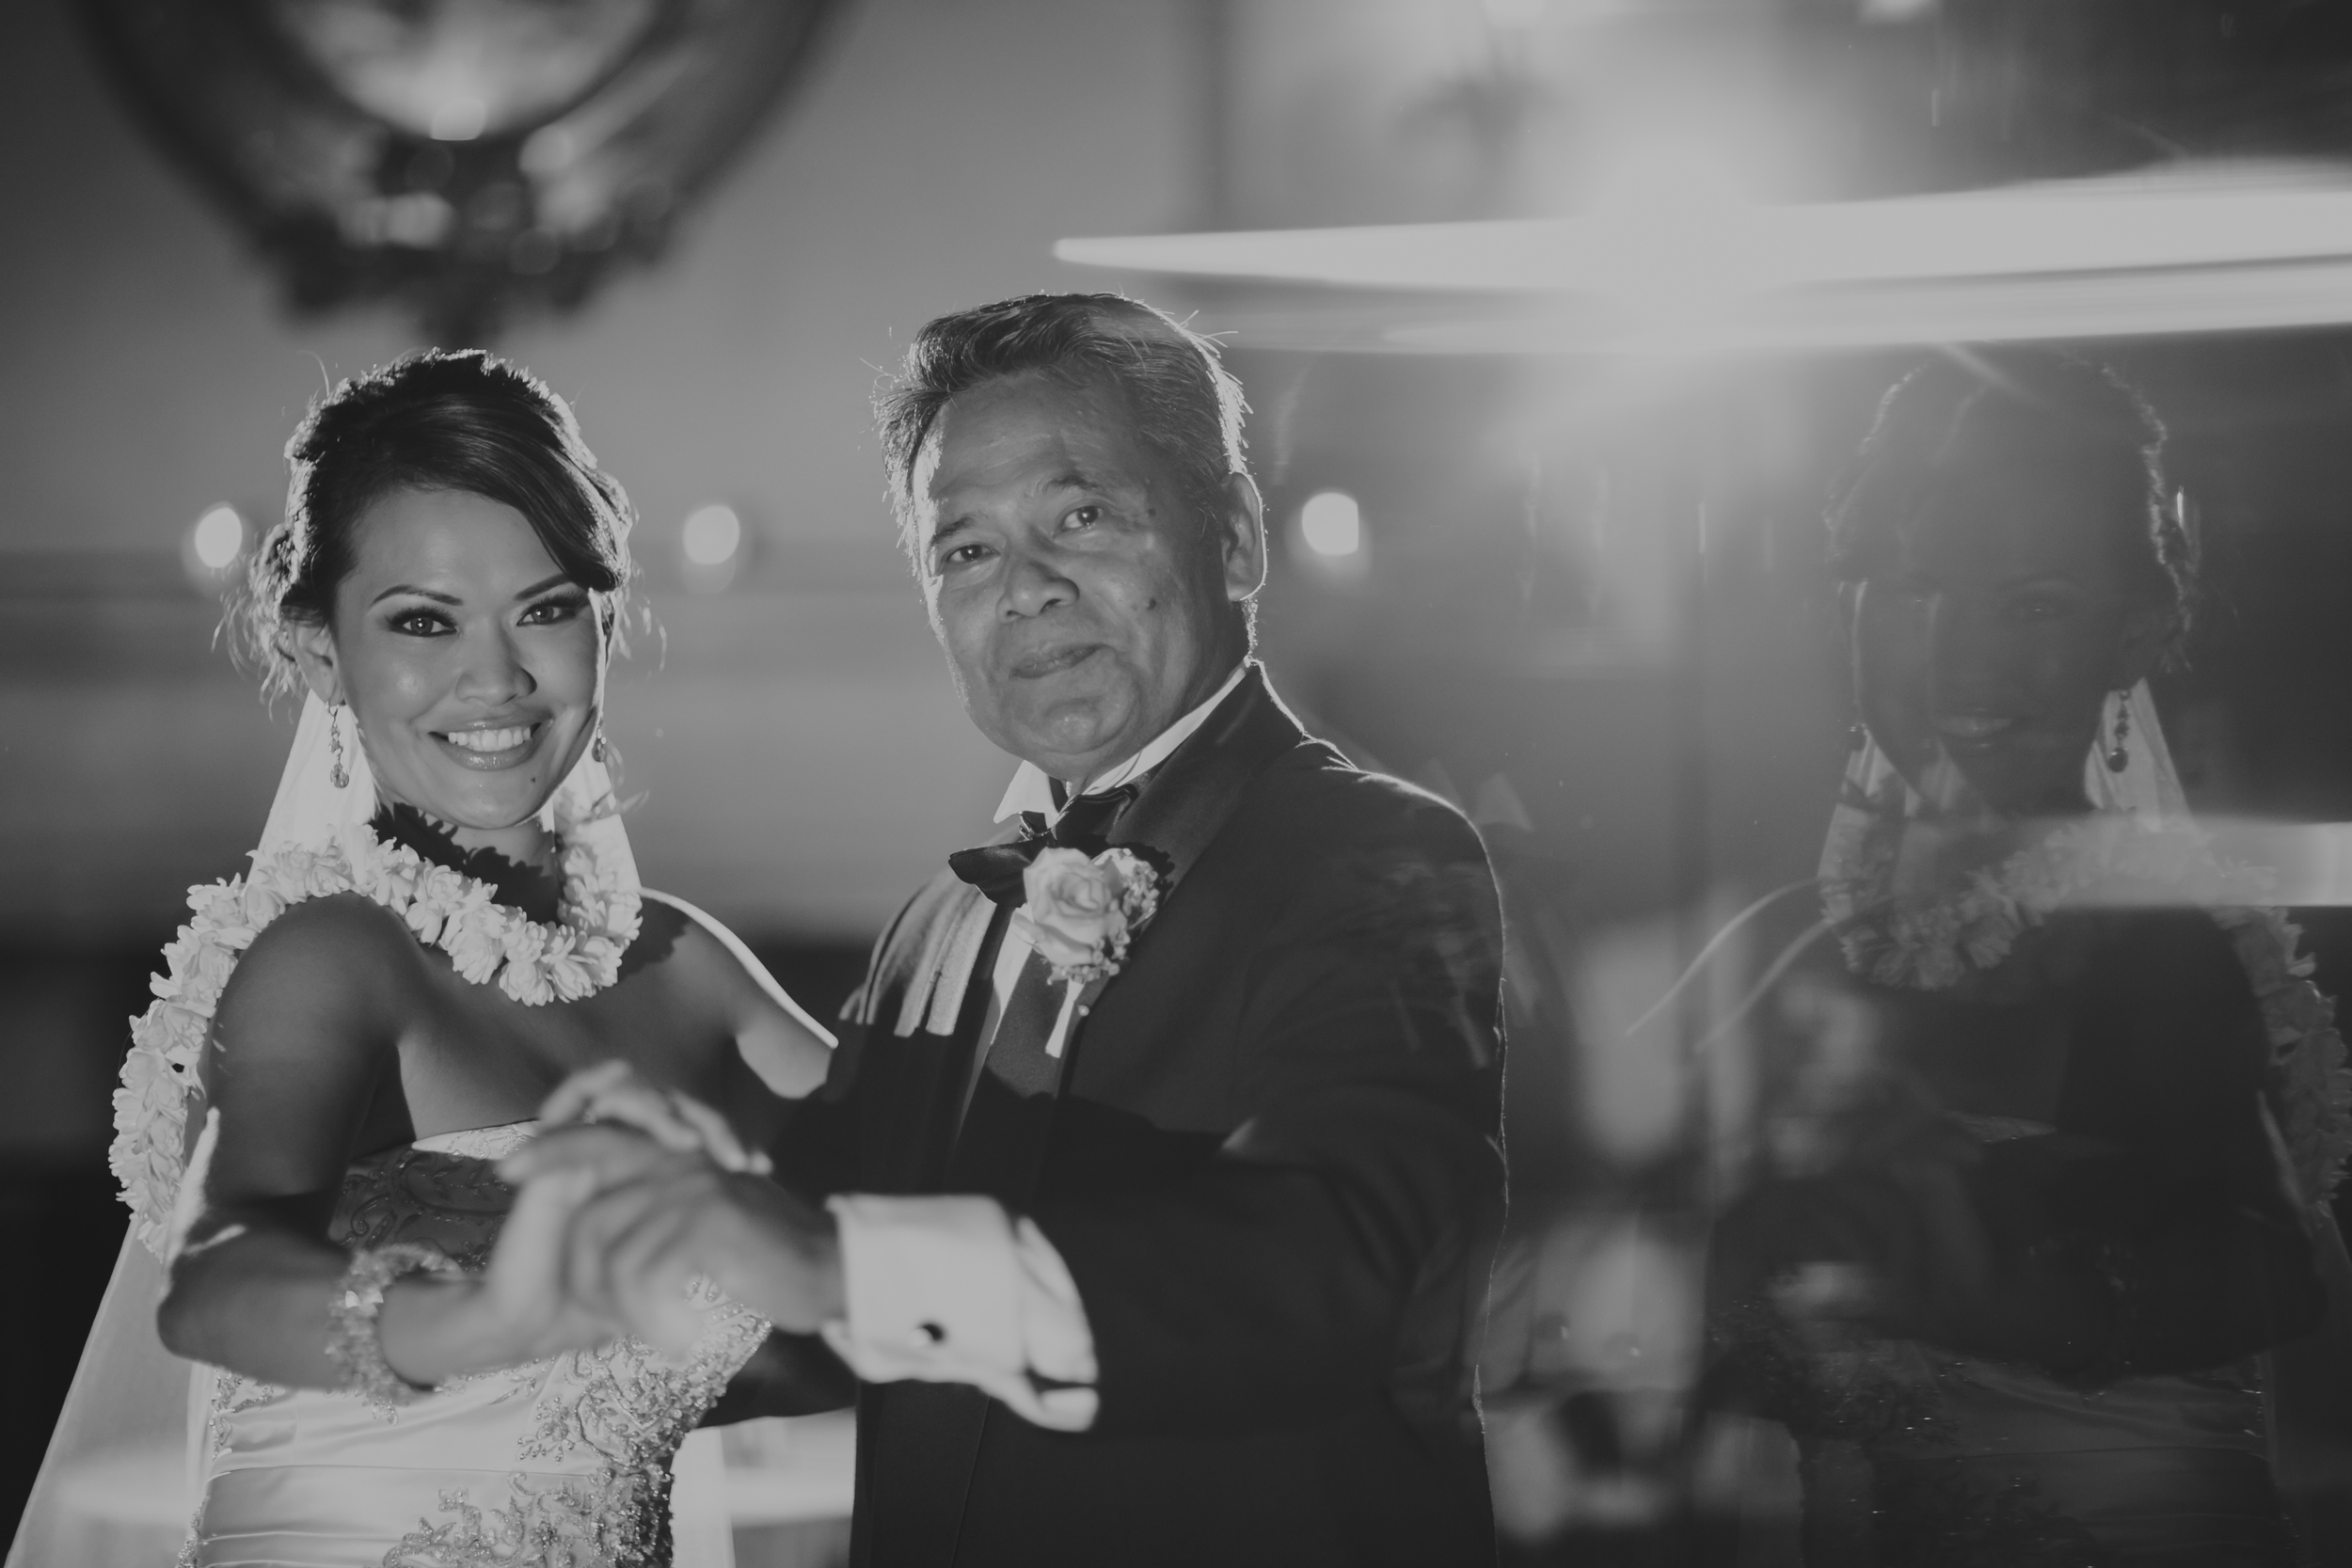 Shiela + Lester's Wedding 9-30-15 352.jpg